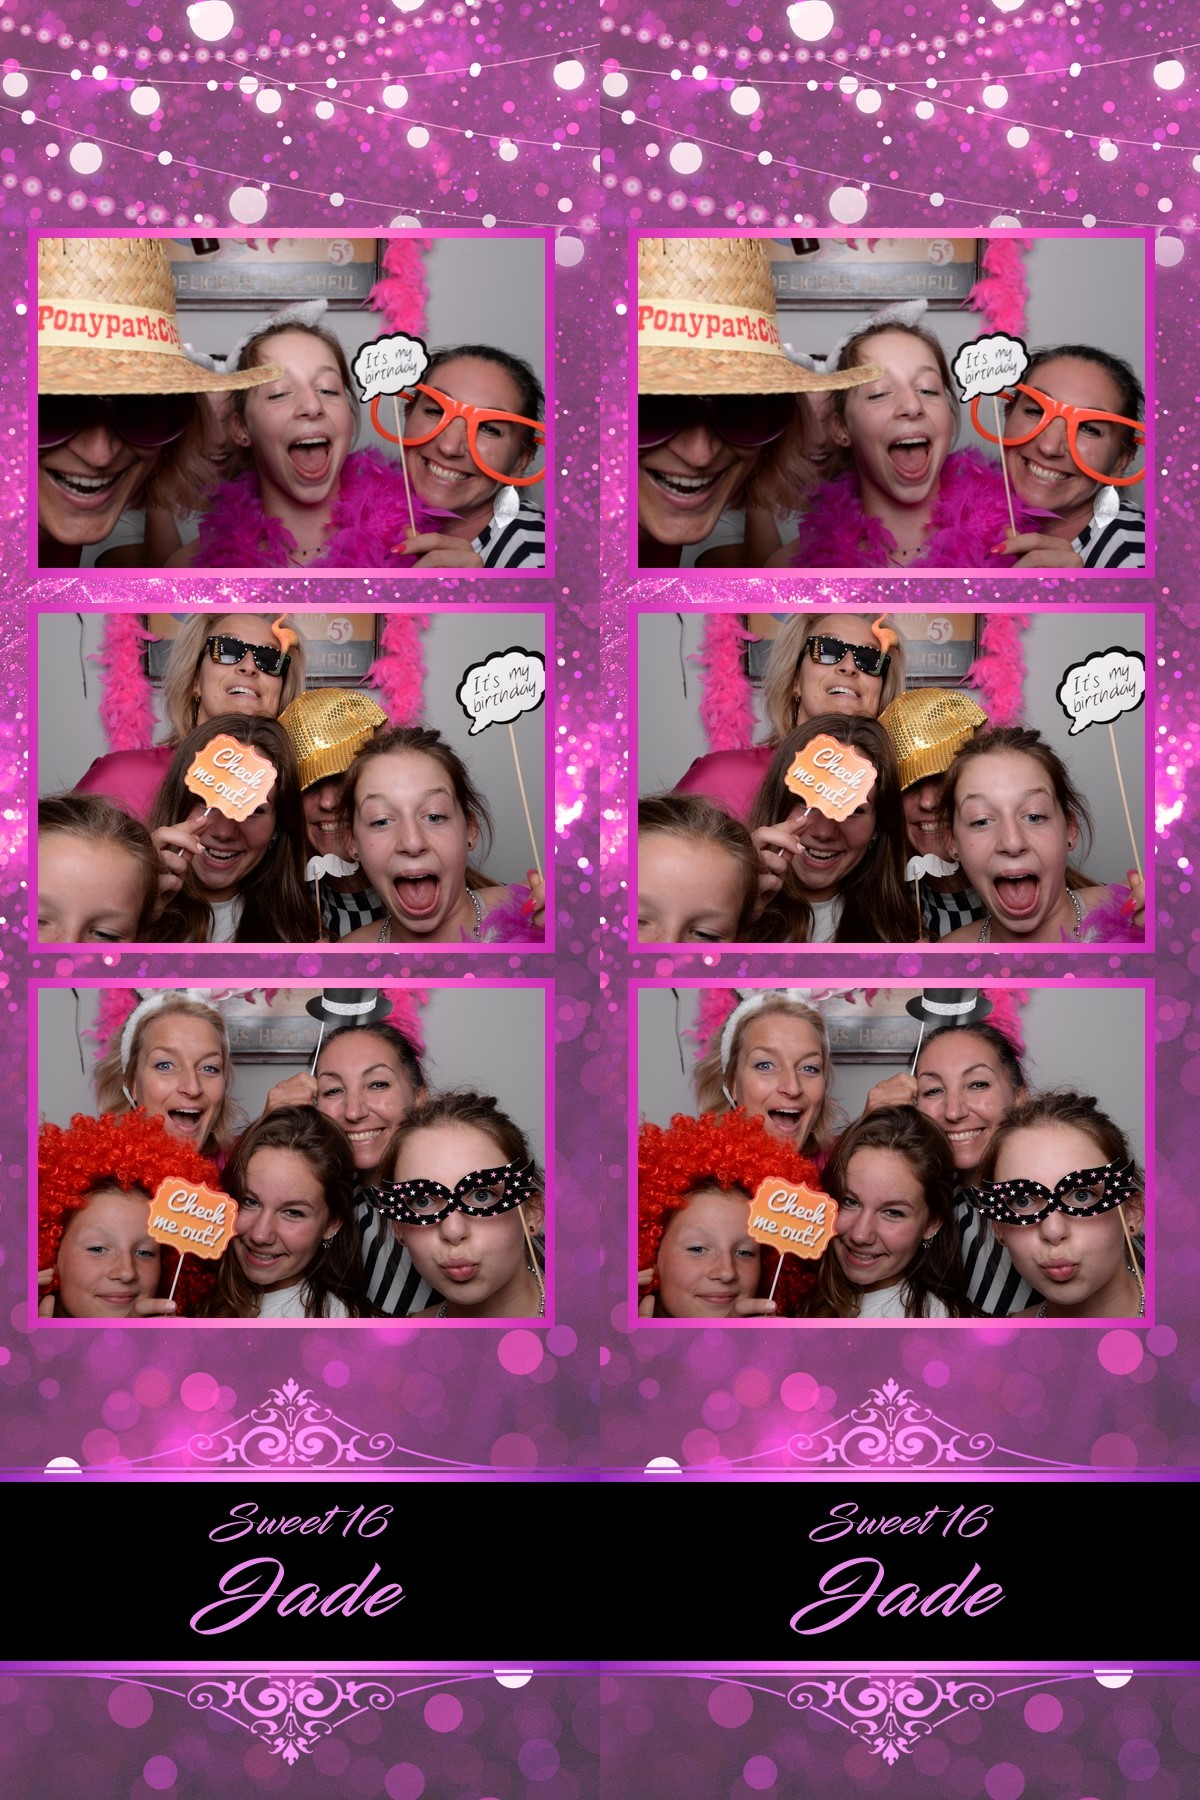 Sweet 16 photostrip